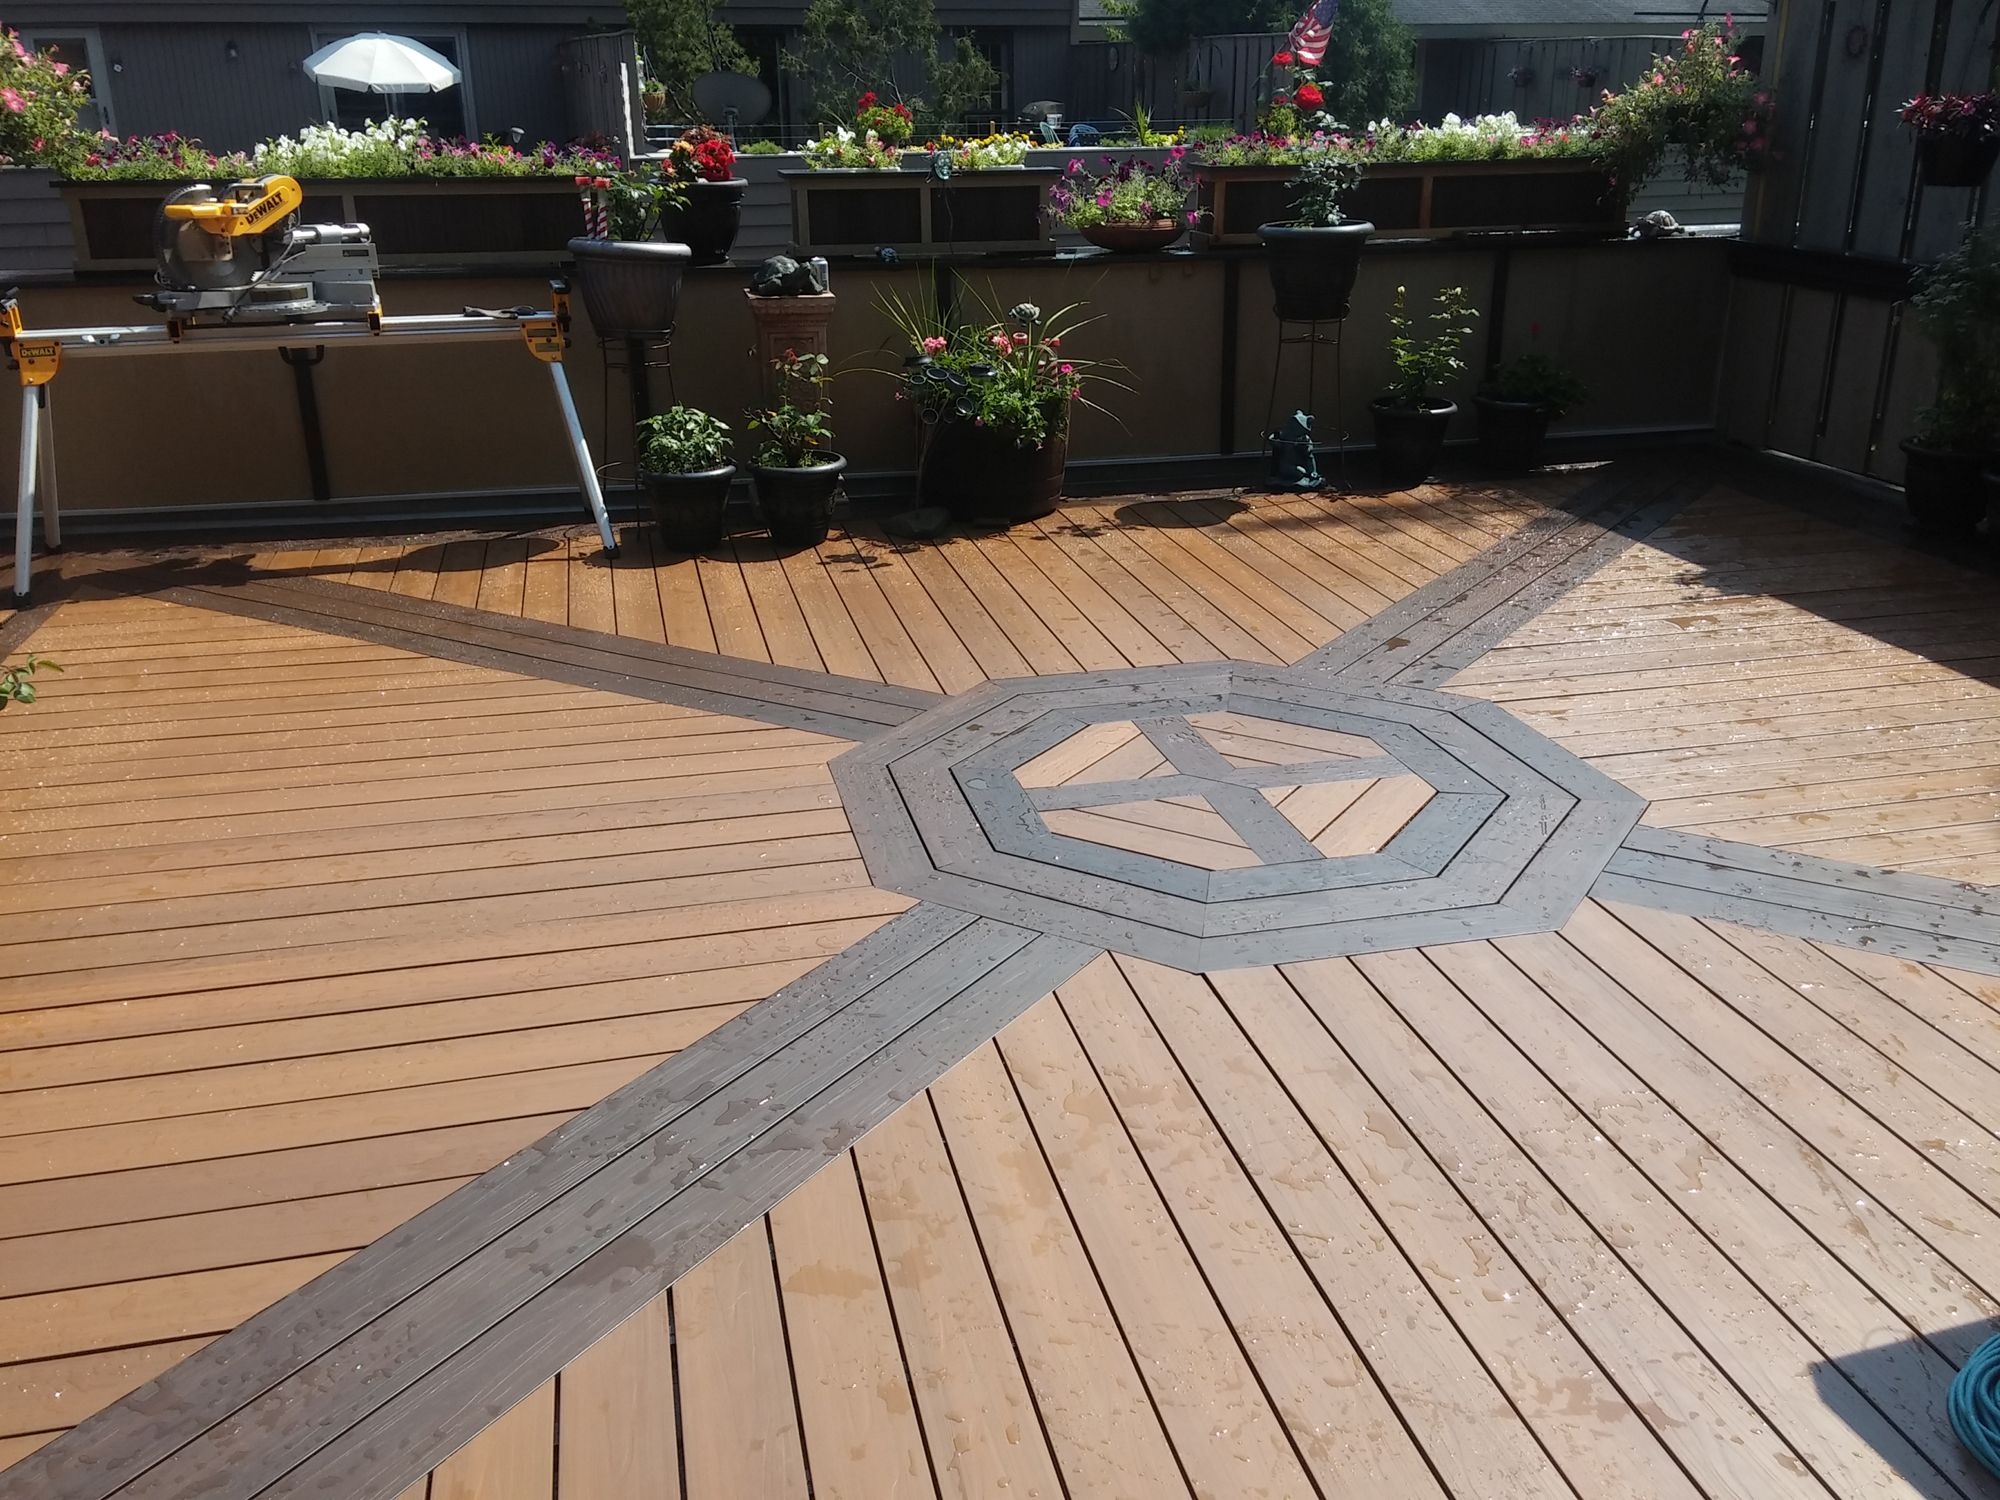 Wonderful Build Of Spanish Walnut And Peruvian Teak The 2 Tone Really Accents The Deck Outdoor Decor Wood Plastic Composite Deck Boards